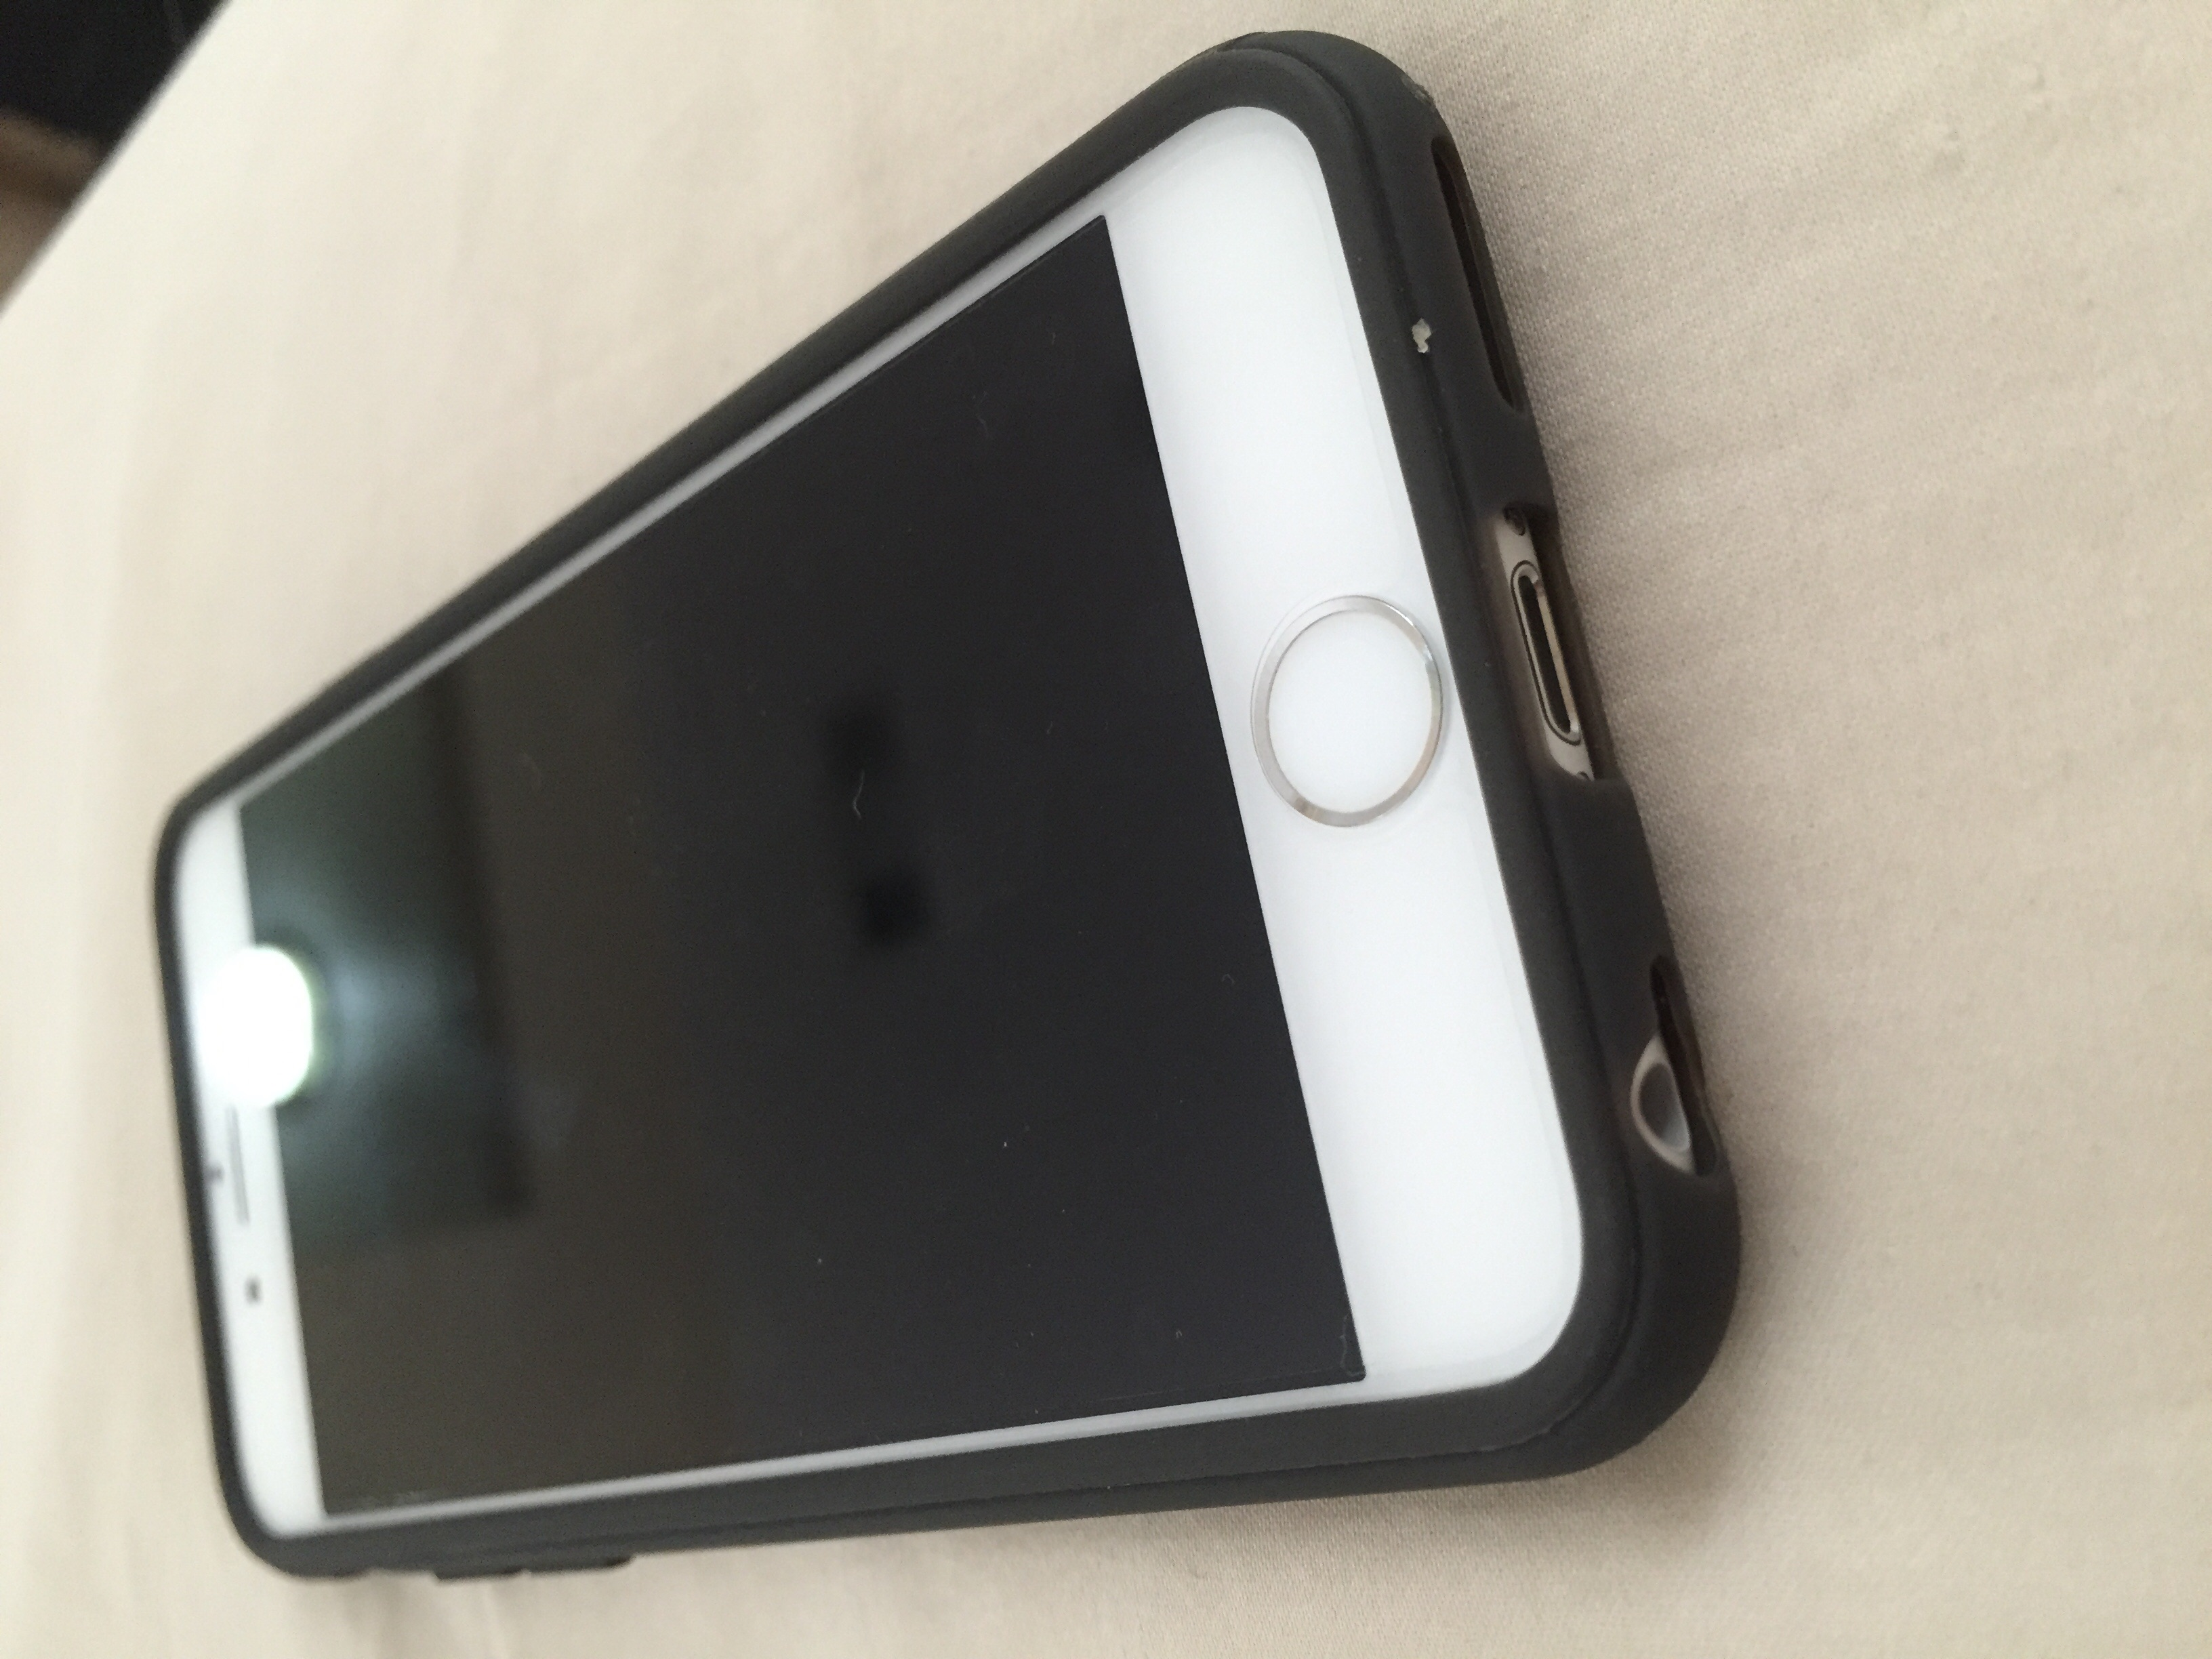 big sale c3c76 a2b45 Diztronic's new iPhone 6 case is awesome | MacRumors Forums